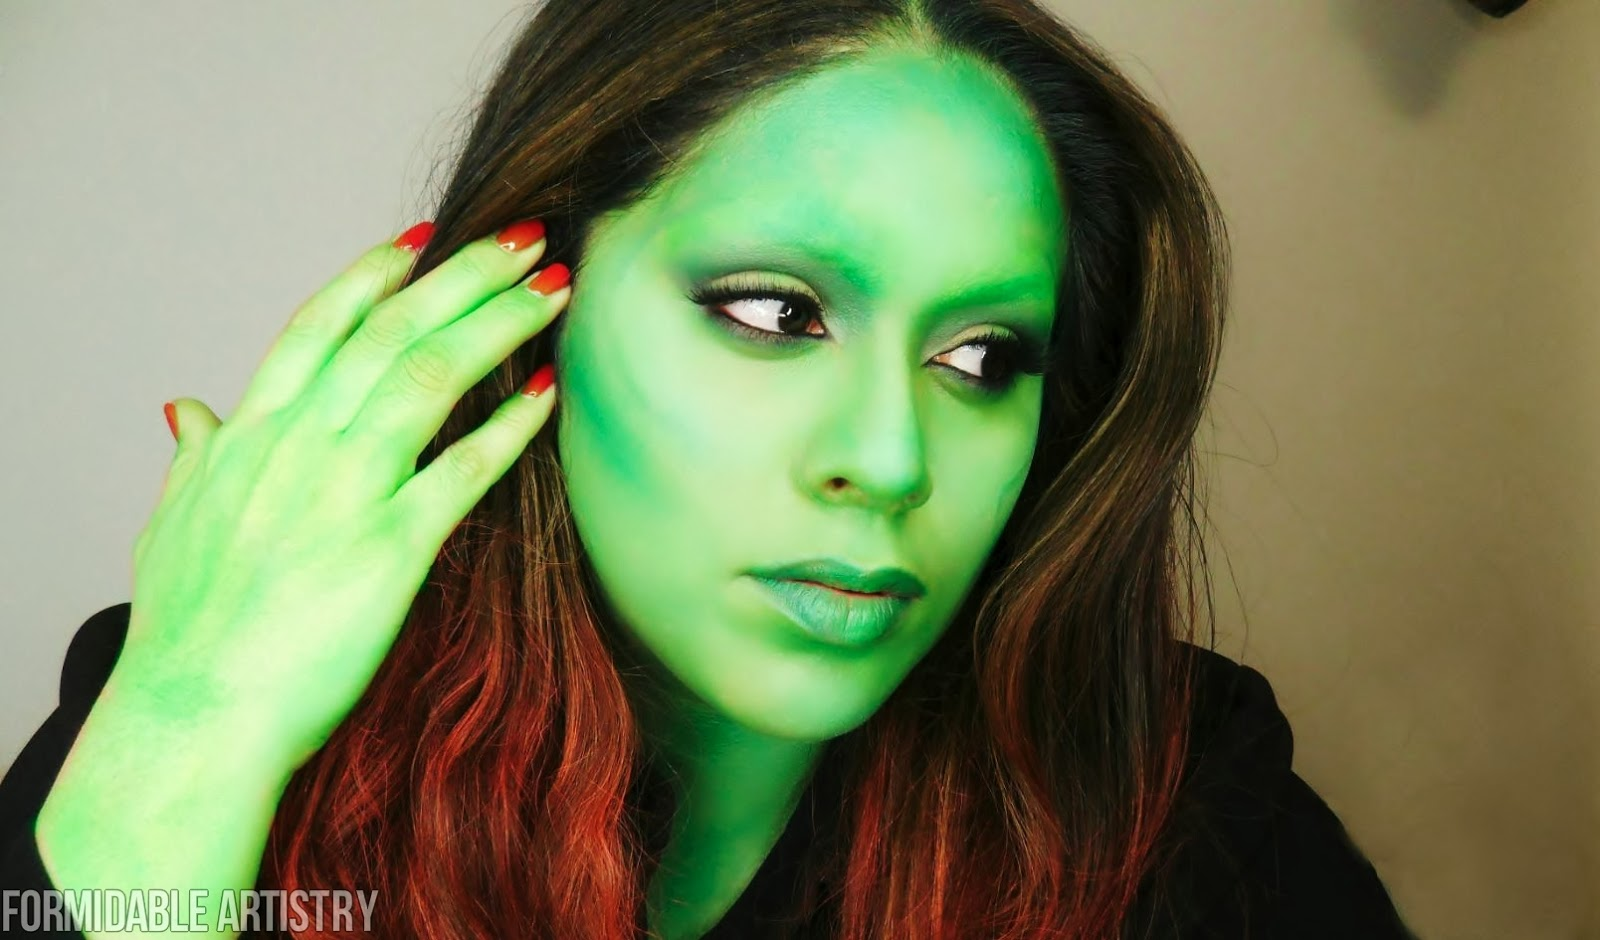 Formidableartistry Guardians Of The Galaxy Gamora